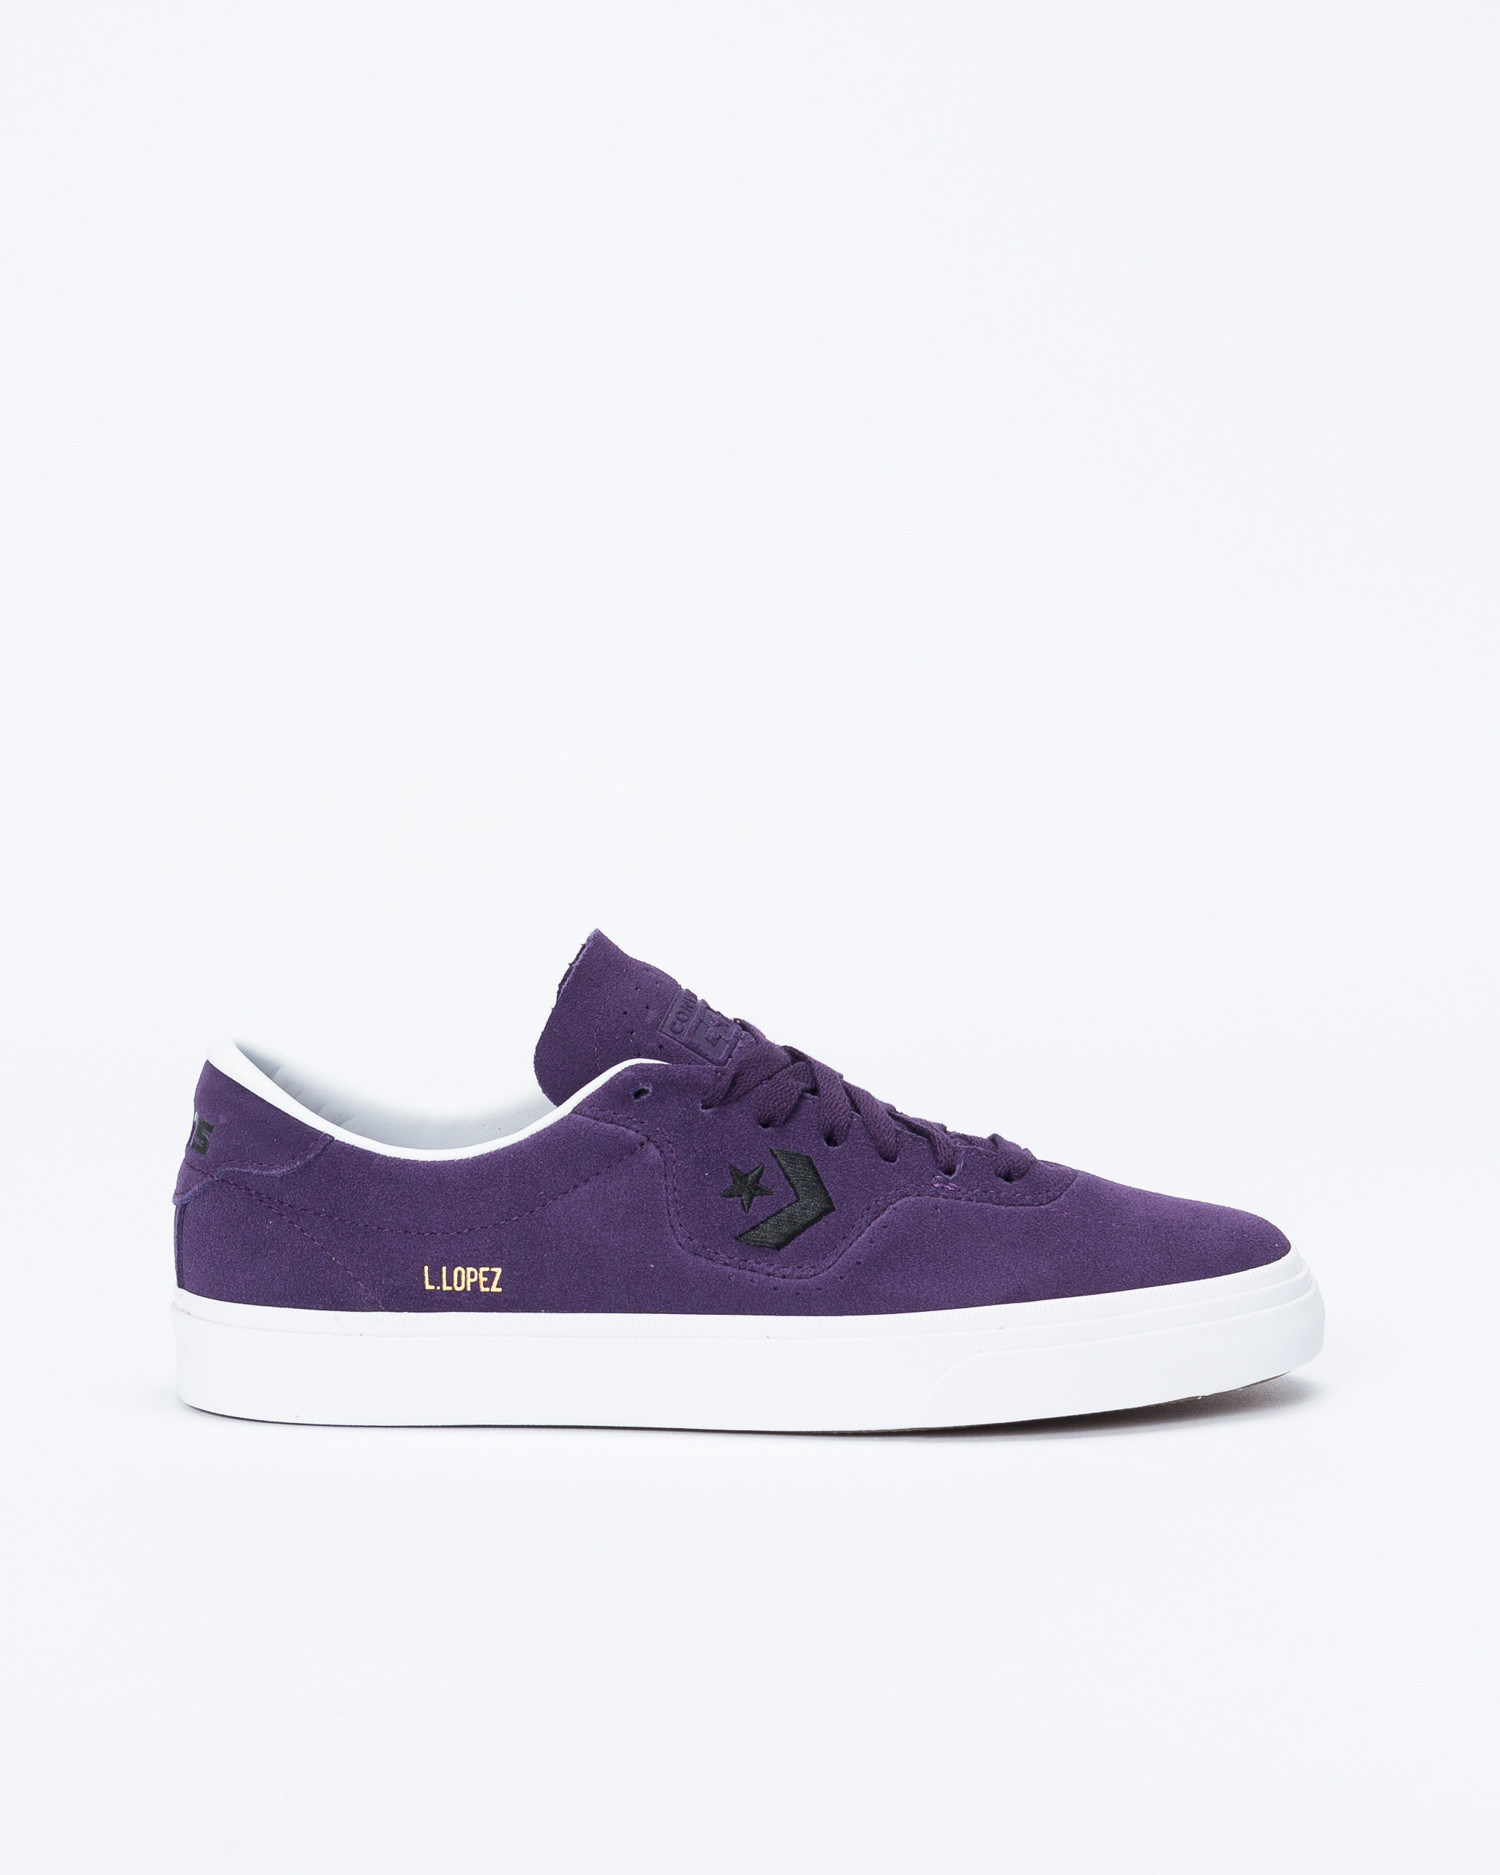 Converse Louie Lopez Pro Rubber Backed Suede OX Grand Purple/Black/White